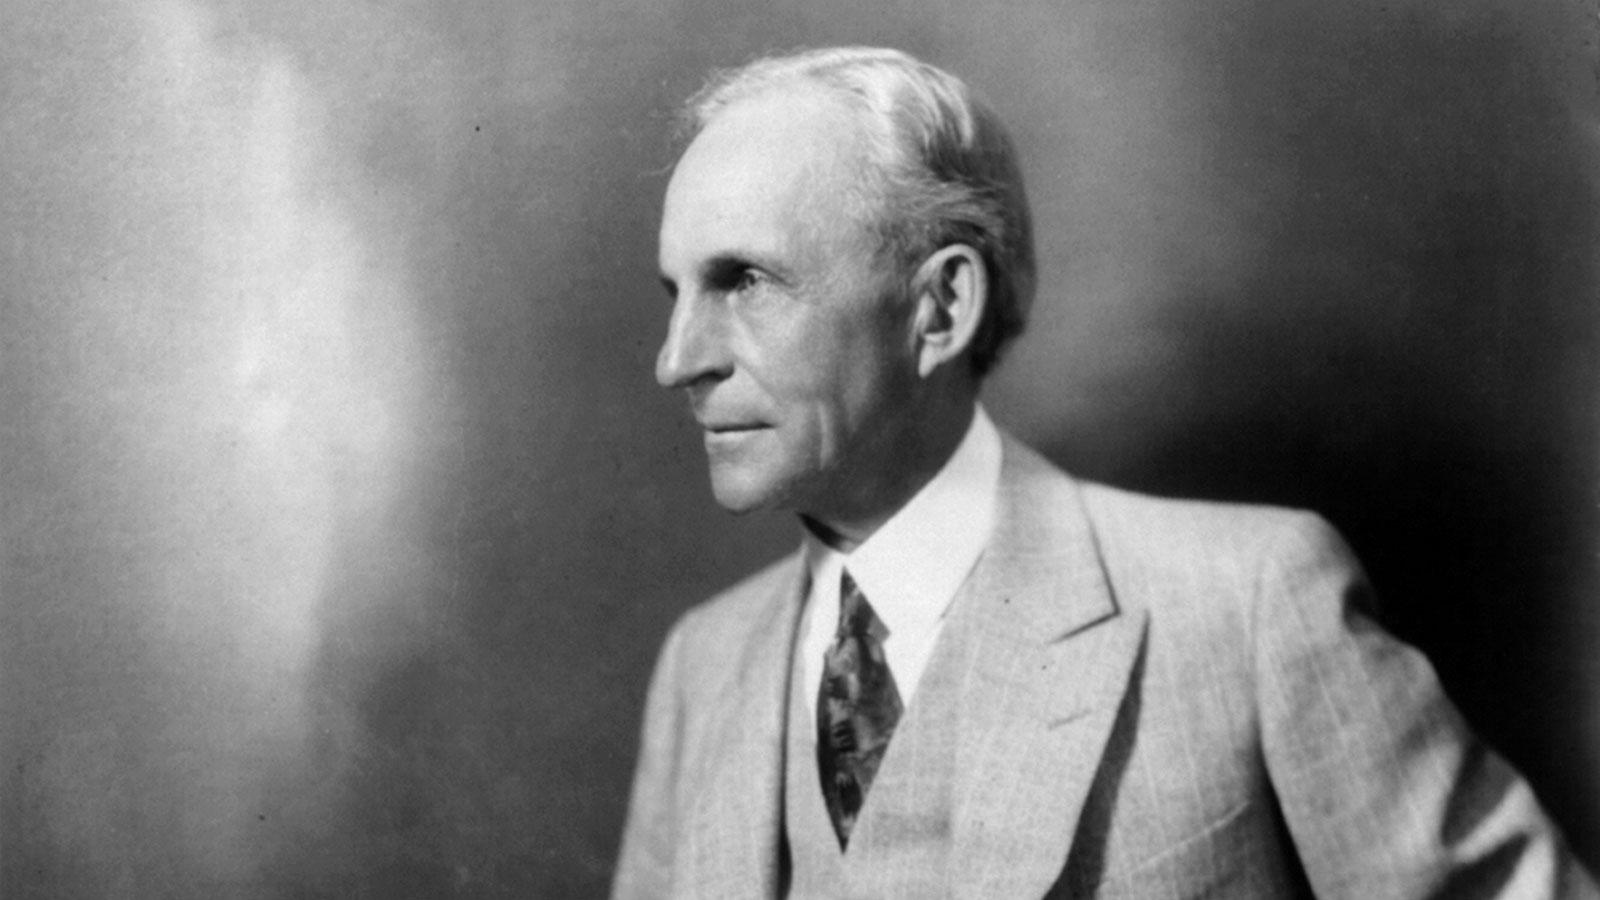 Hustle Like Ford. 3 Productive Hustle Advice From Henry Ford | The ...